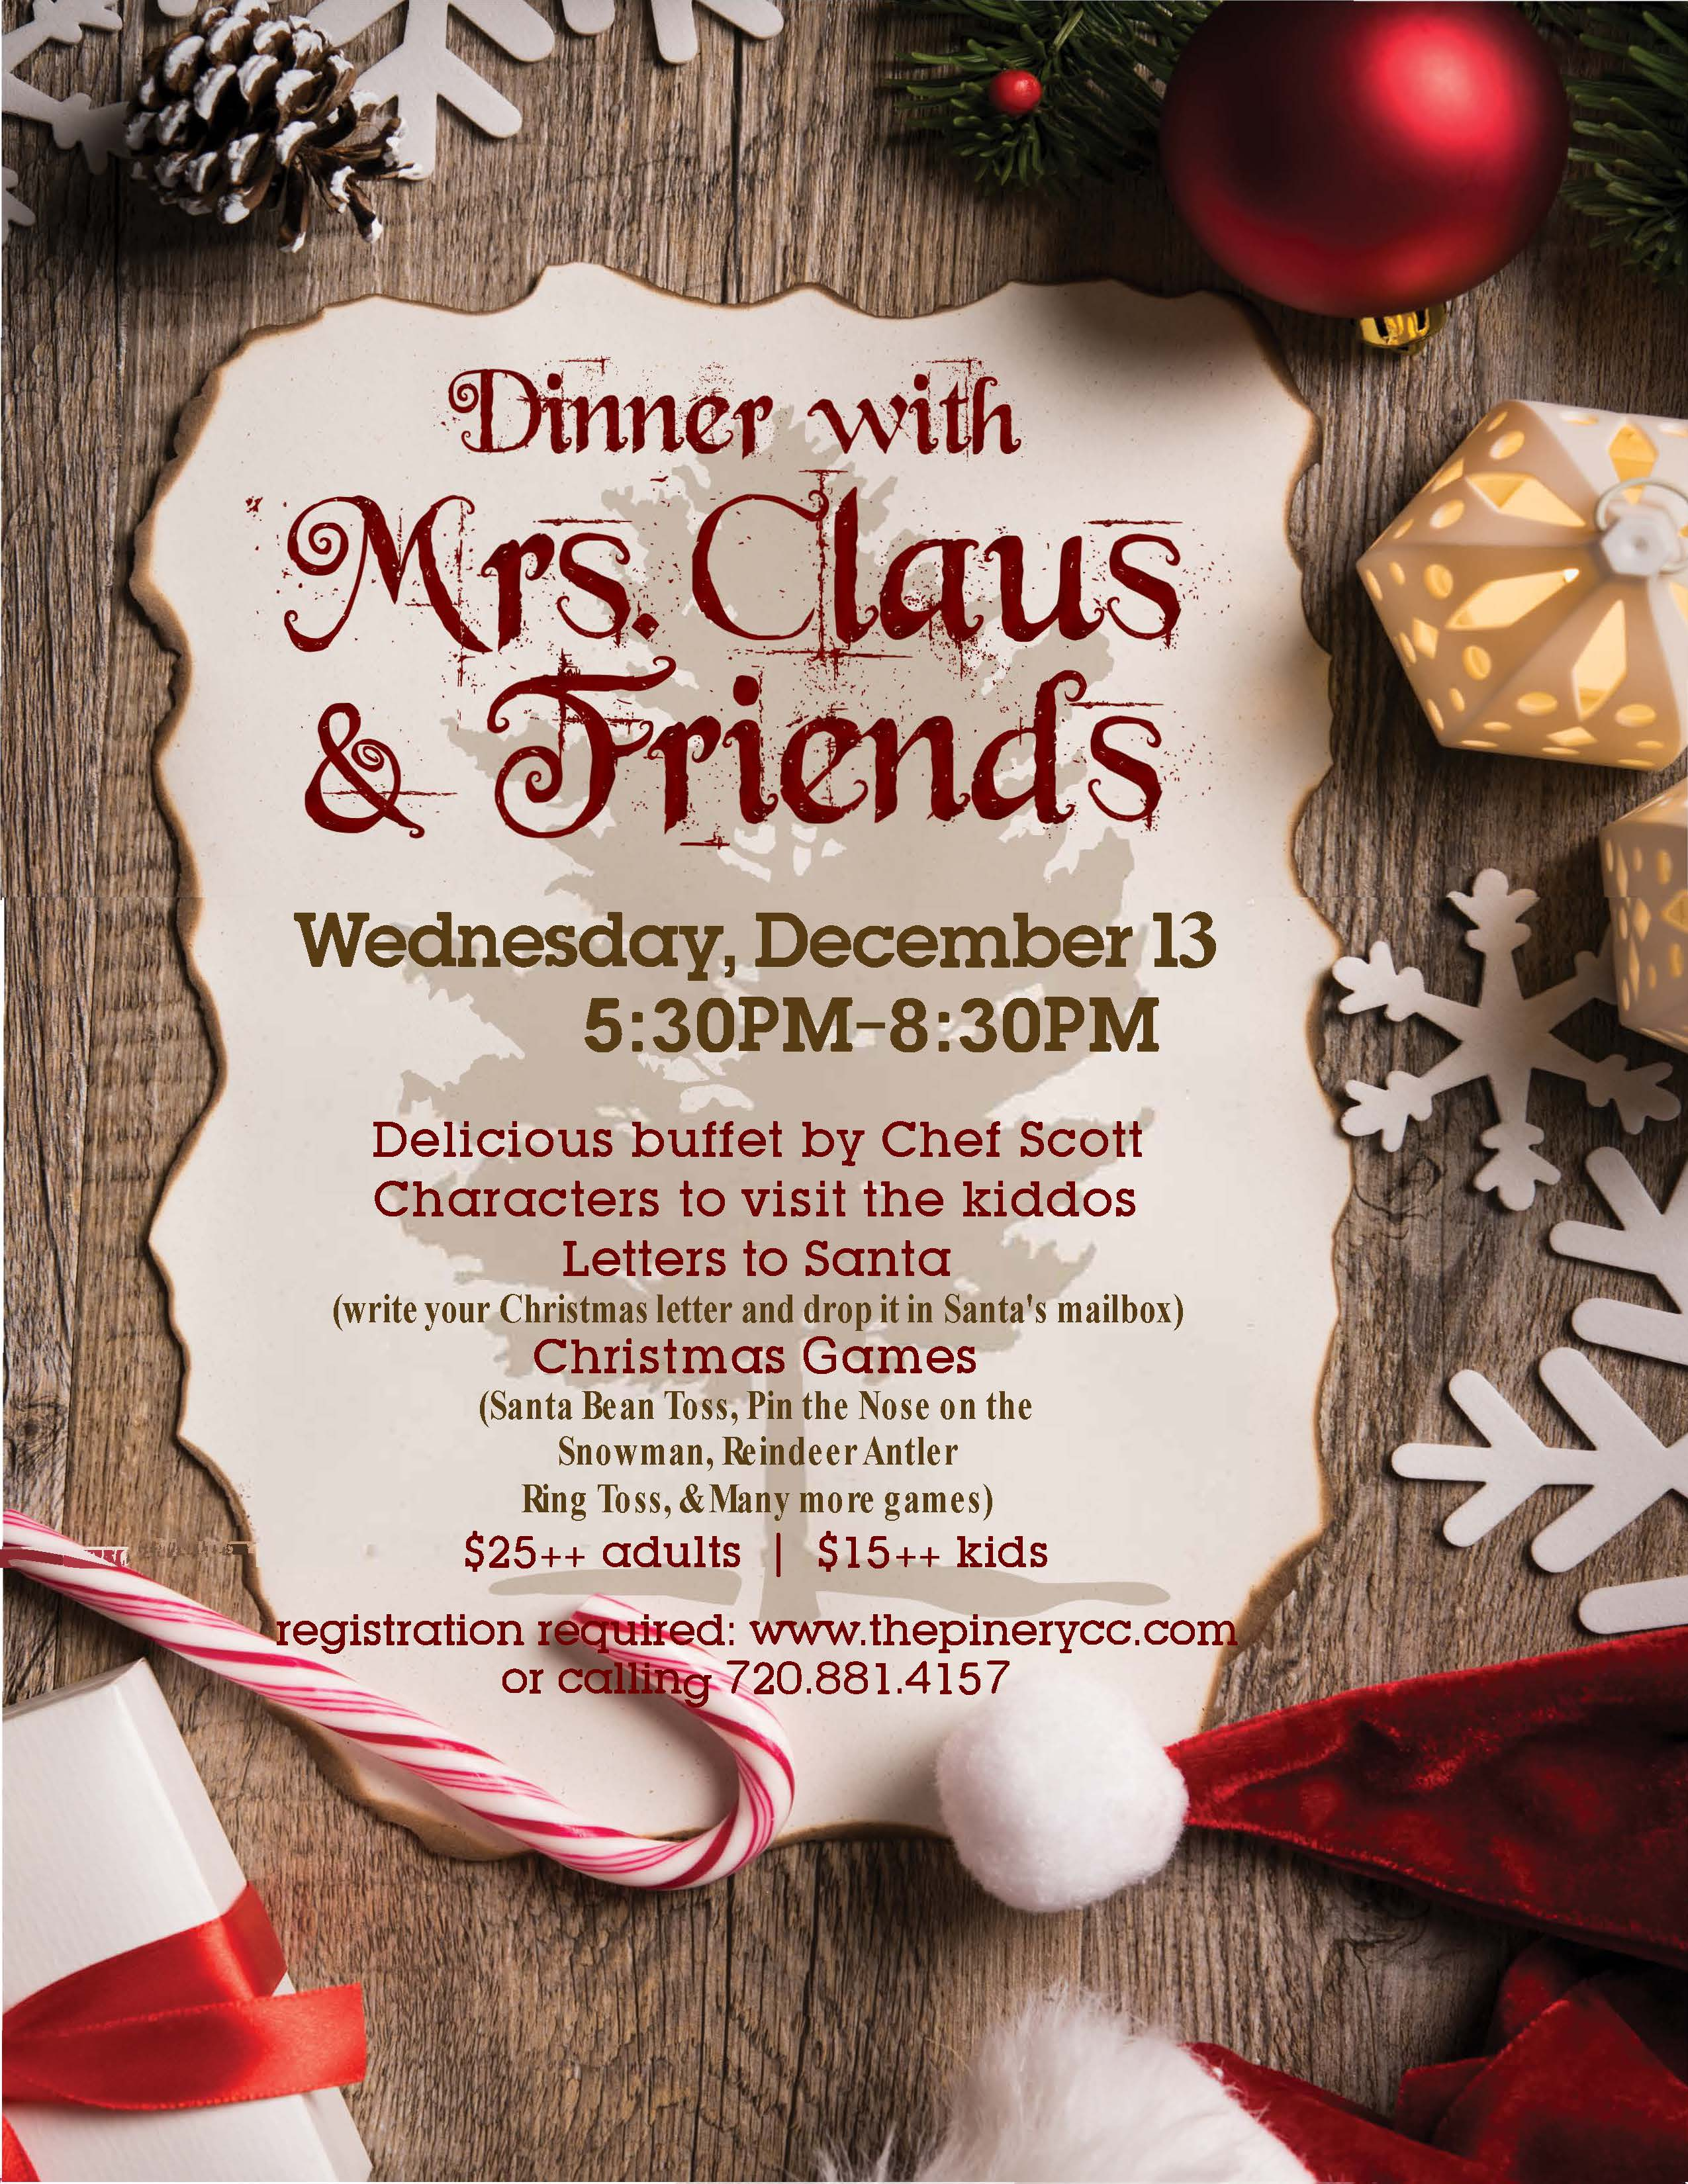 come down to the pinery to have dinner with mrs claus surprise friends - Pinery Christmas Trees